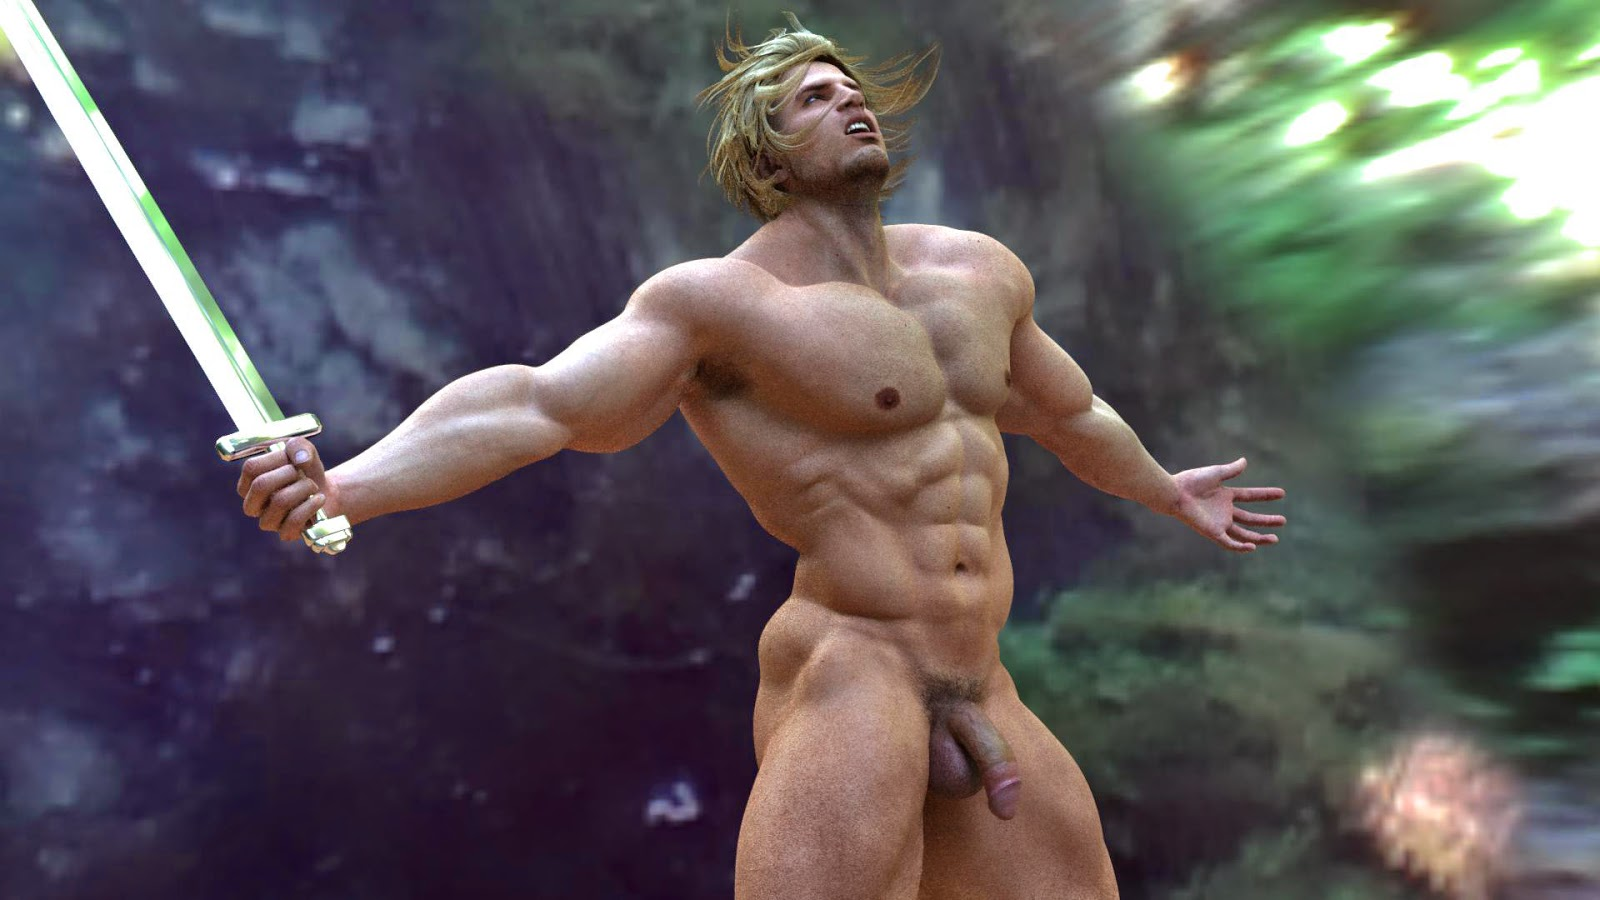 Nude male warrior fantasy photos sexy photos